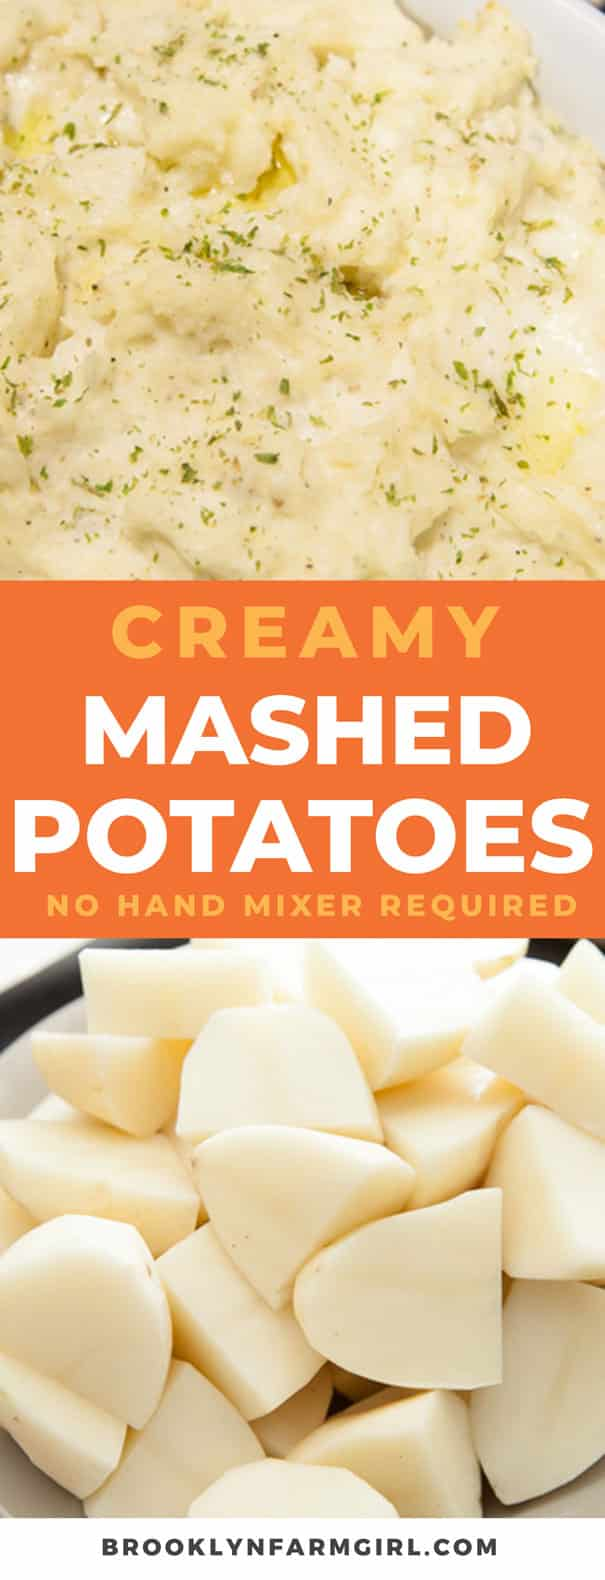 The best creamy mashed potatoes recipe made with cream cheese. Easy to make, no hand mixer required! This is my #1 requested dish at Thanksgiving dinner!